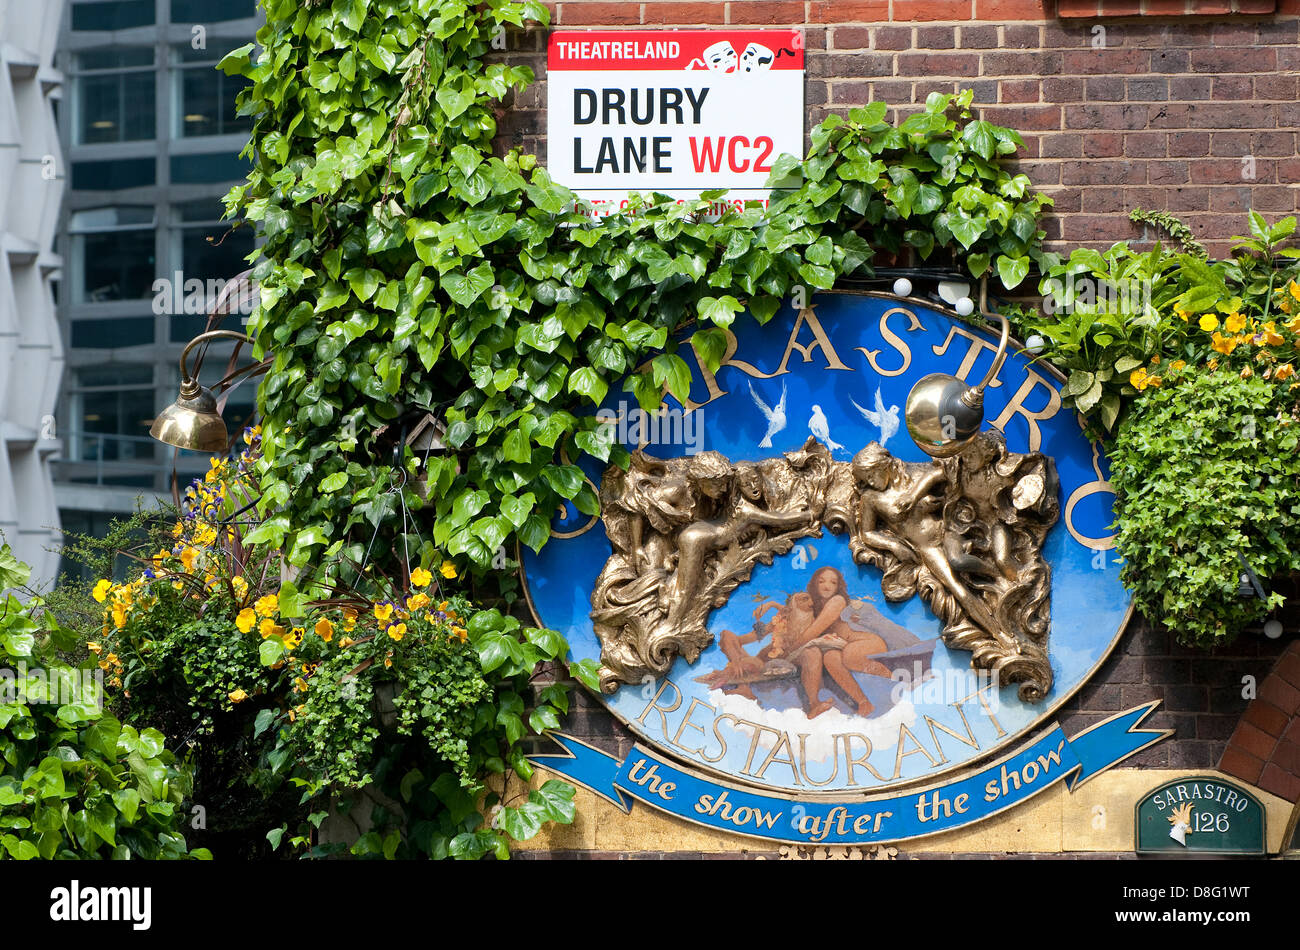 sarastro restaurant sign, drury lane, london, england - Stock Image